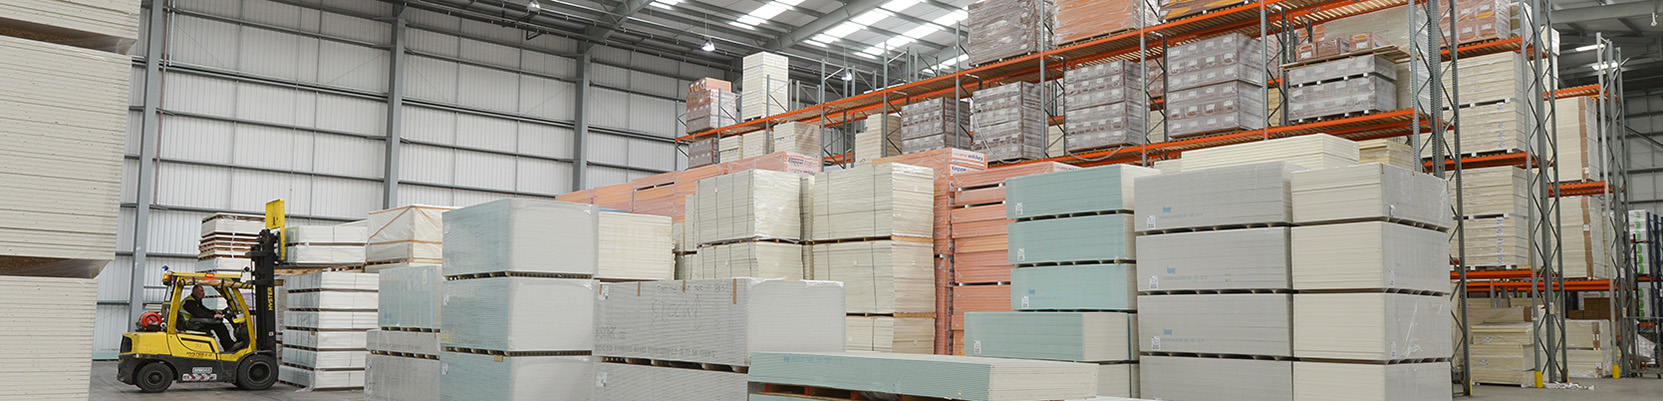 Plasterboard and insulation stock in a warehouse